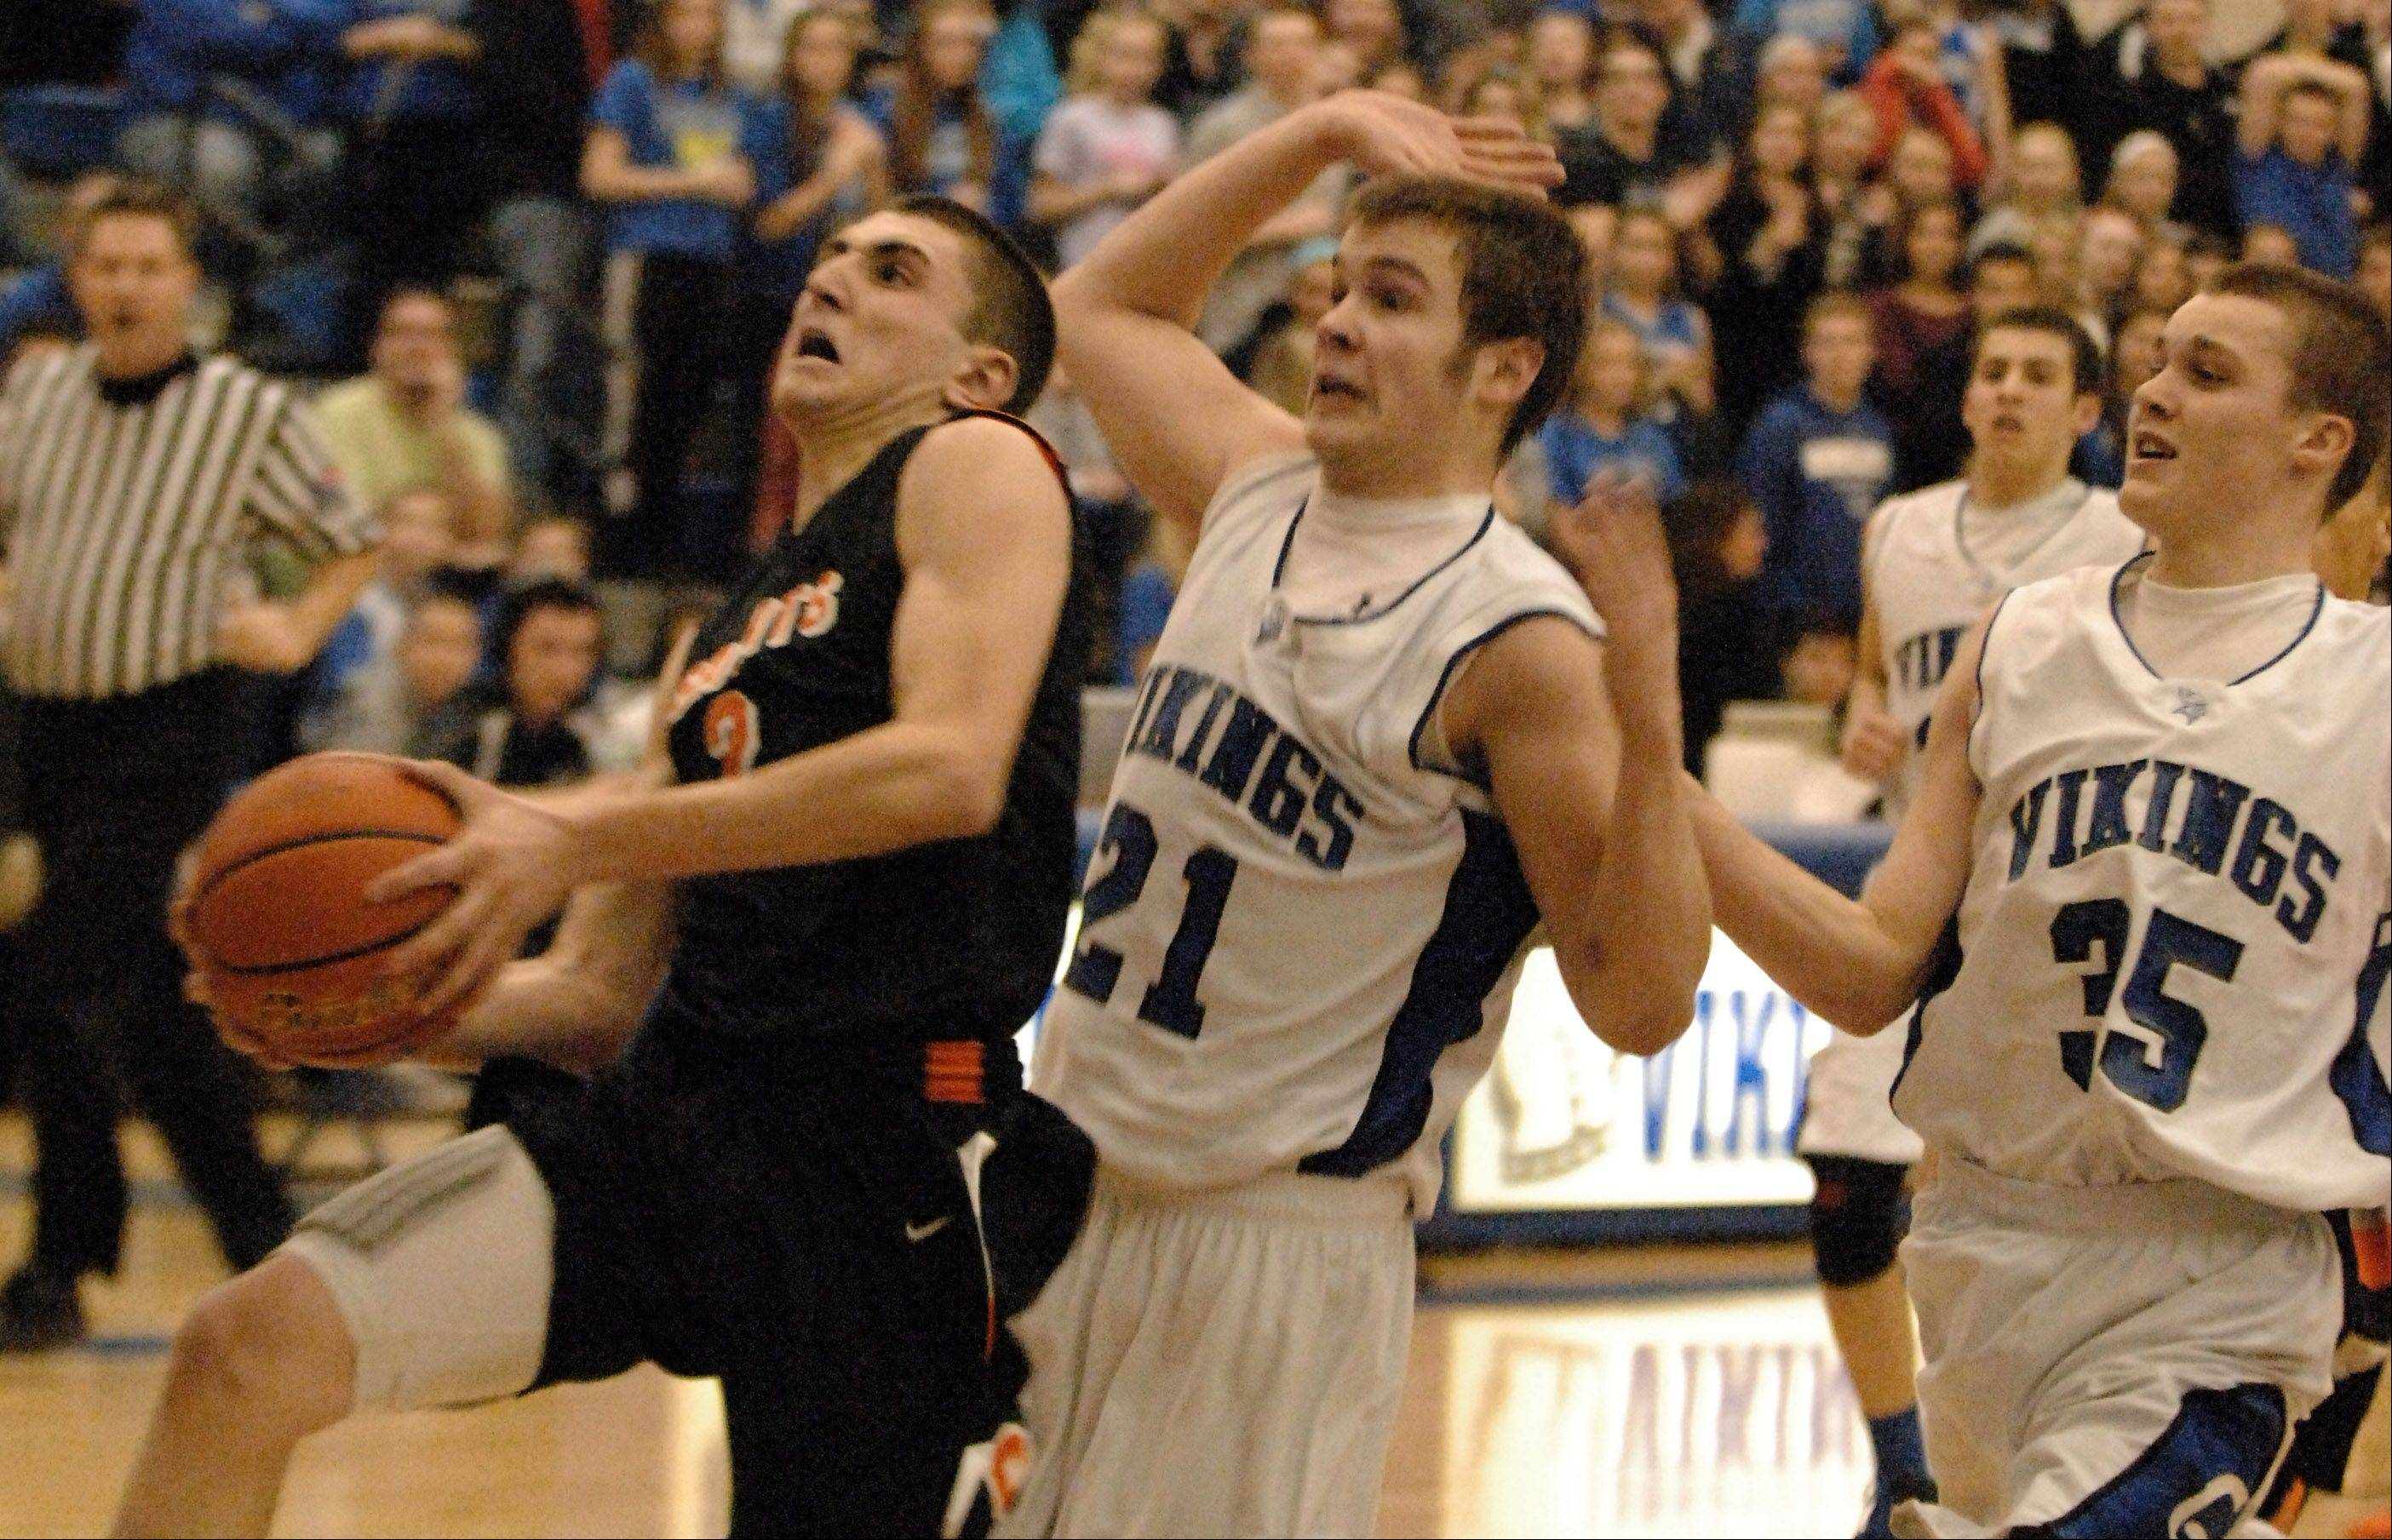 Images from the Geneva vs. St. Charles East boys basketball game Friday, January 24, 2013.